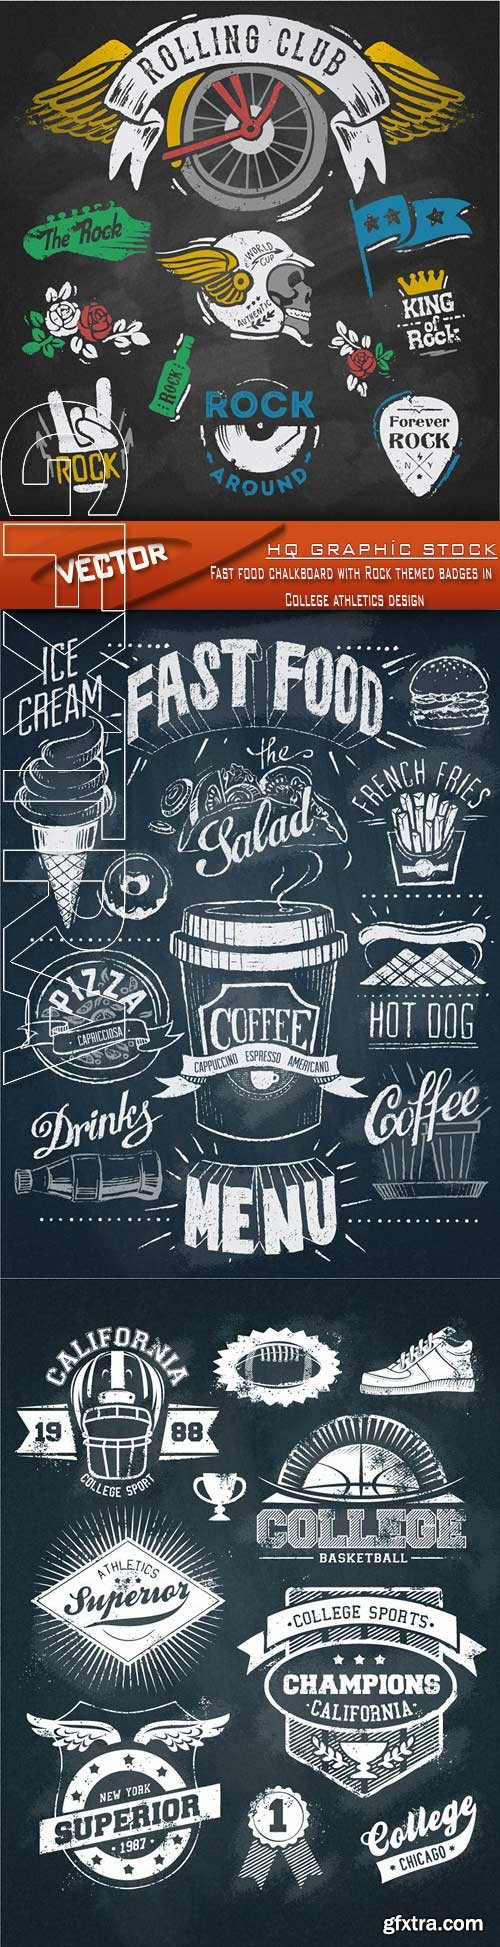 Stock Vector - Fast food chalkboard with Rock themed badges in College athletics design